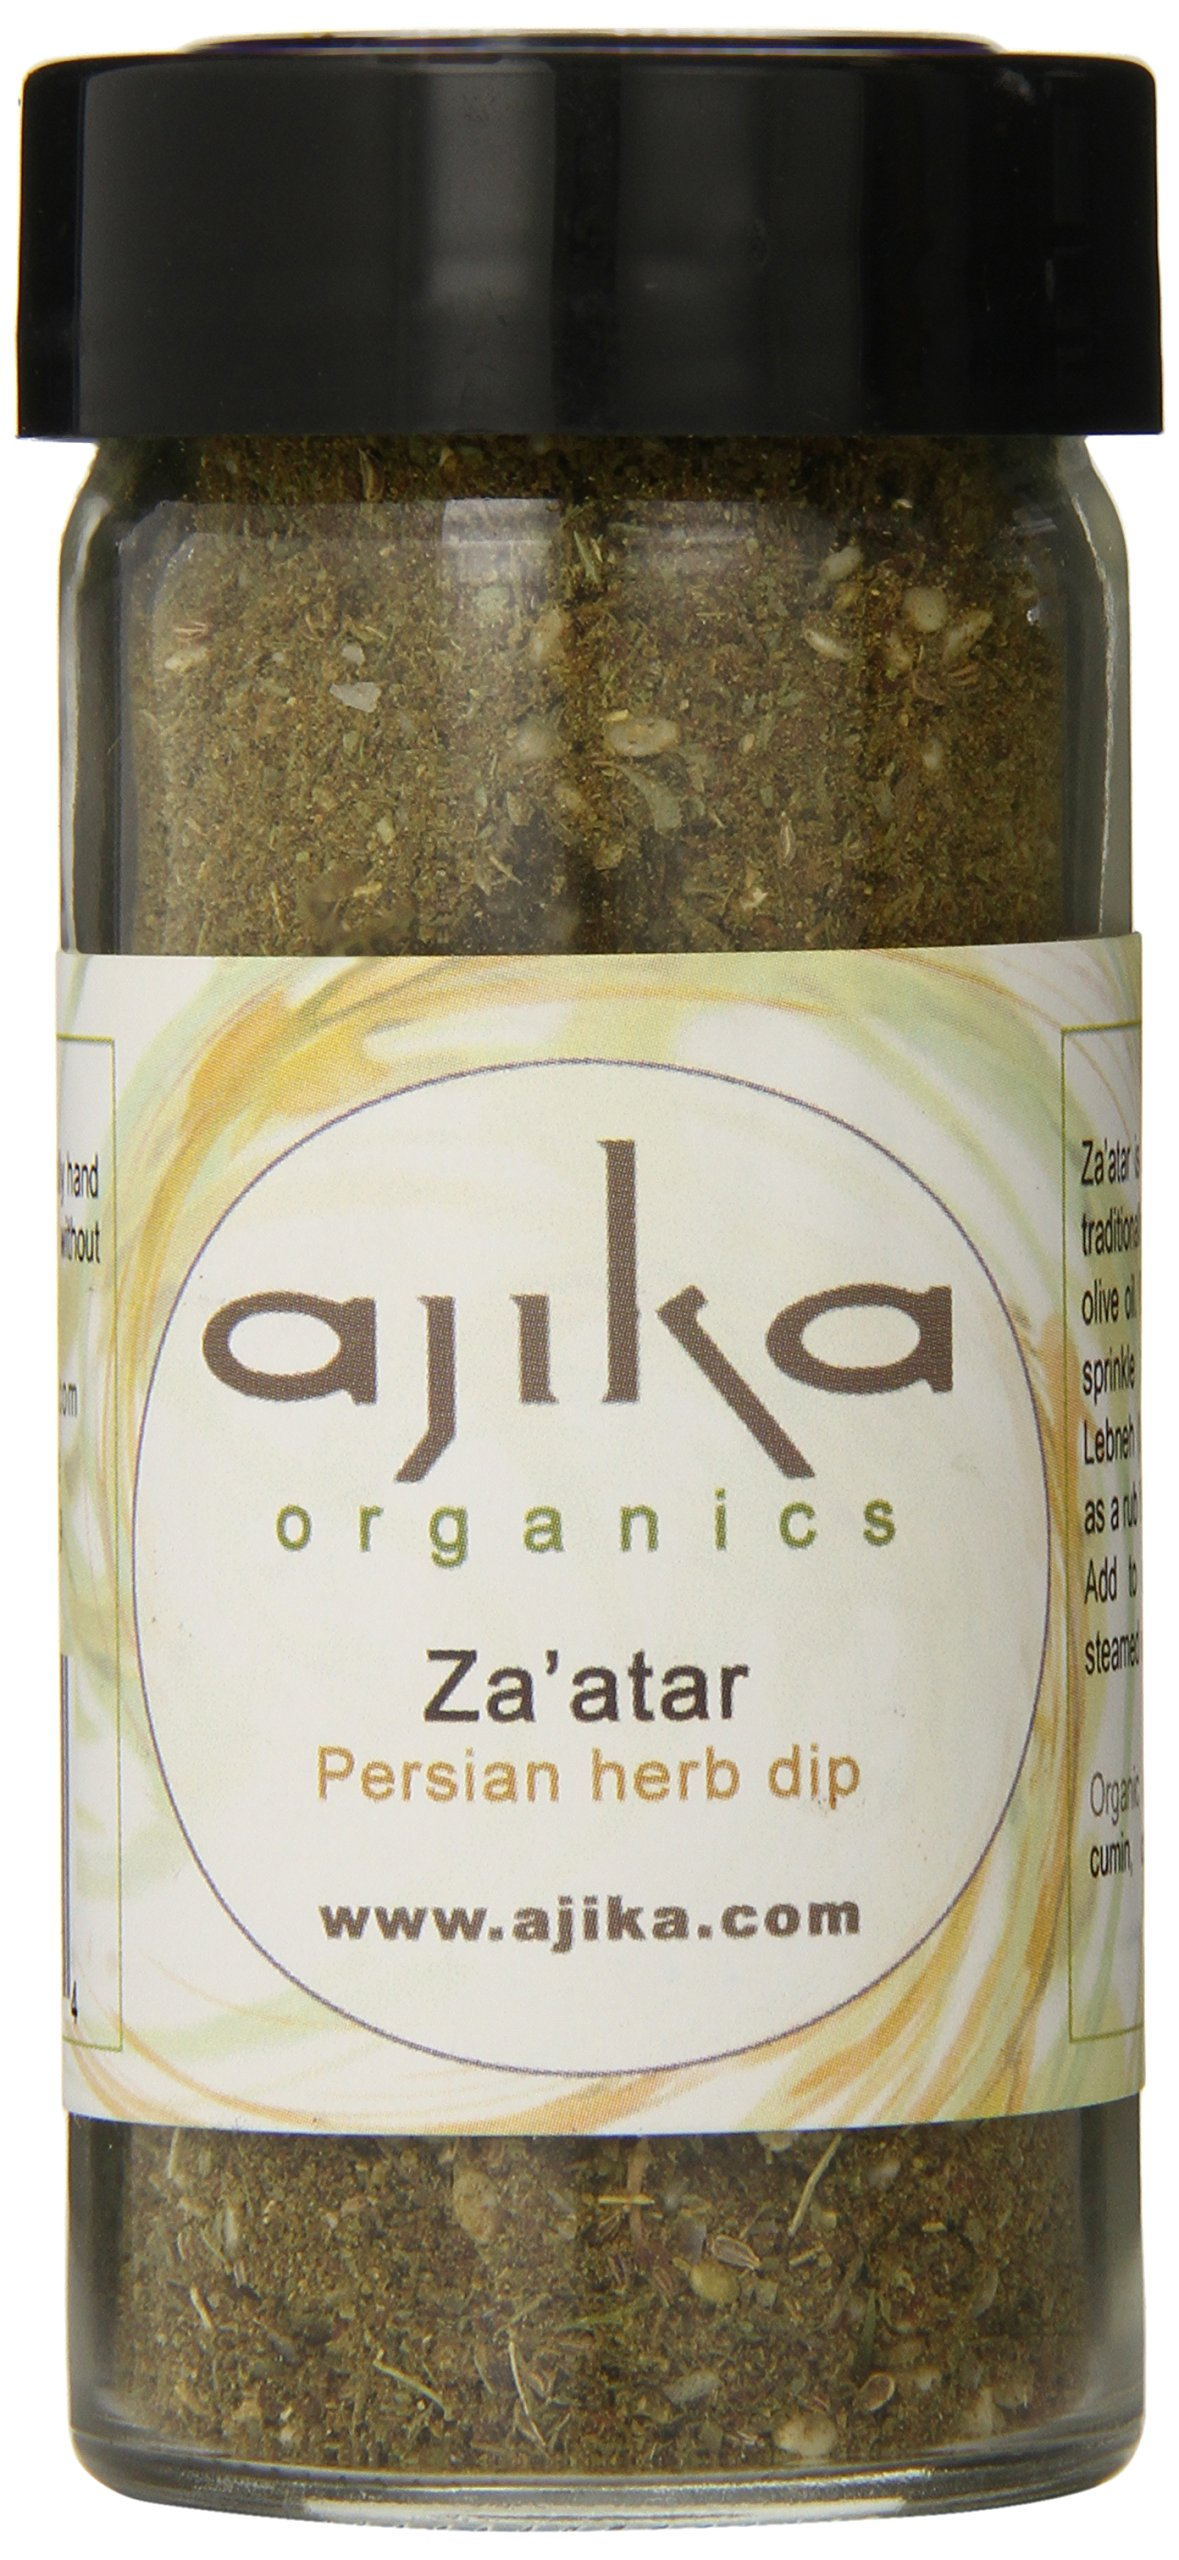 Ajika Organic Green Za'atar (Zaatar) - Herbal Seasoning for Bread, Cheese and Rice, 2-Ounce